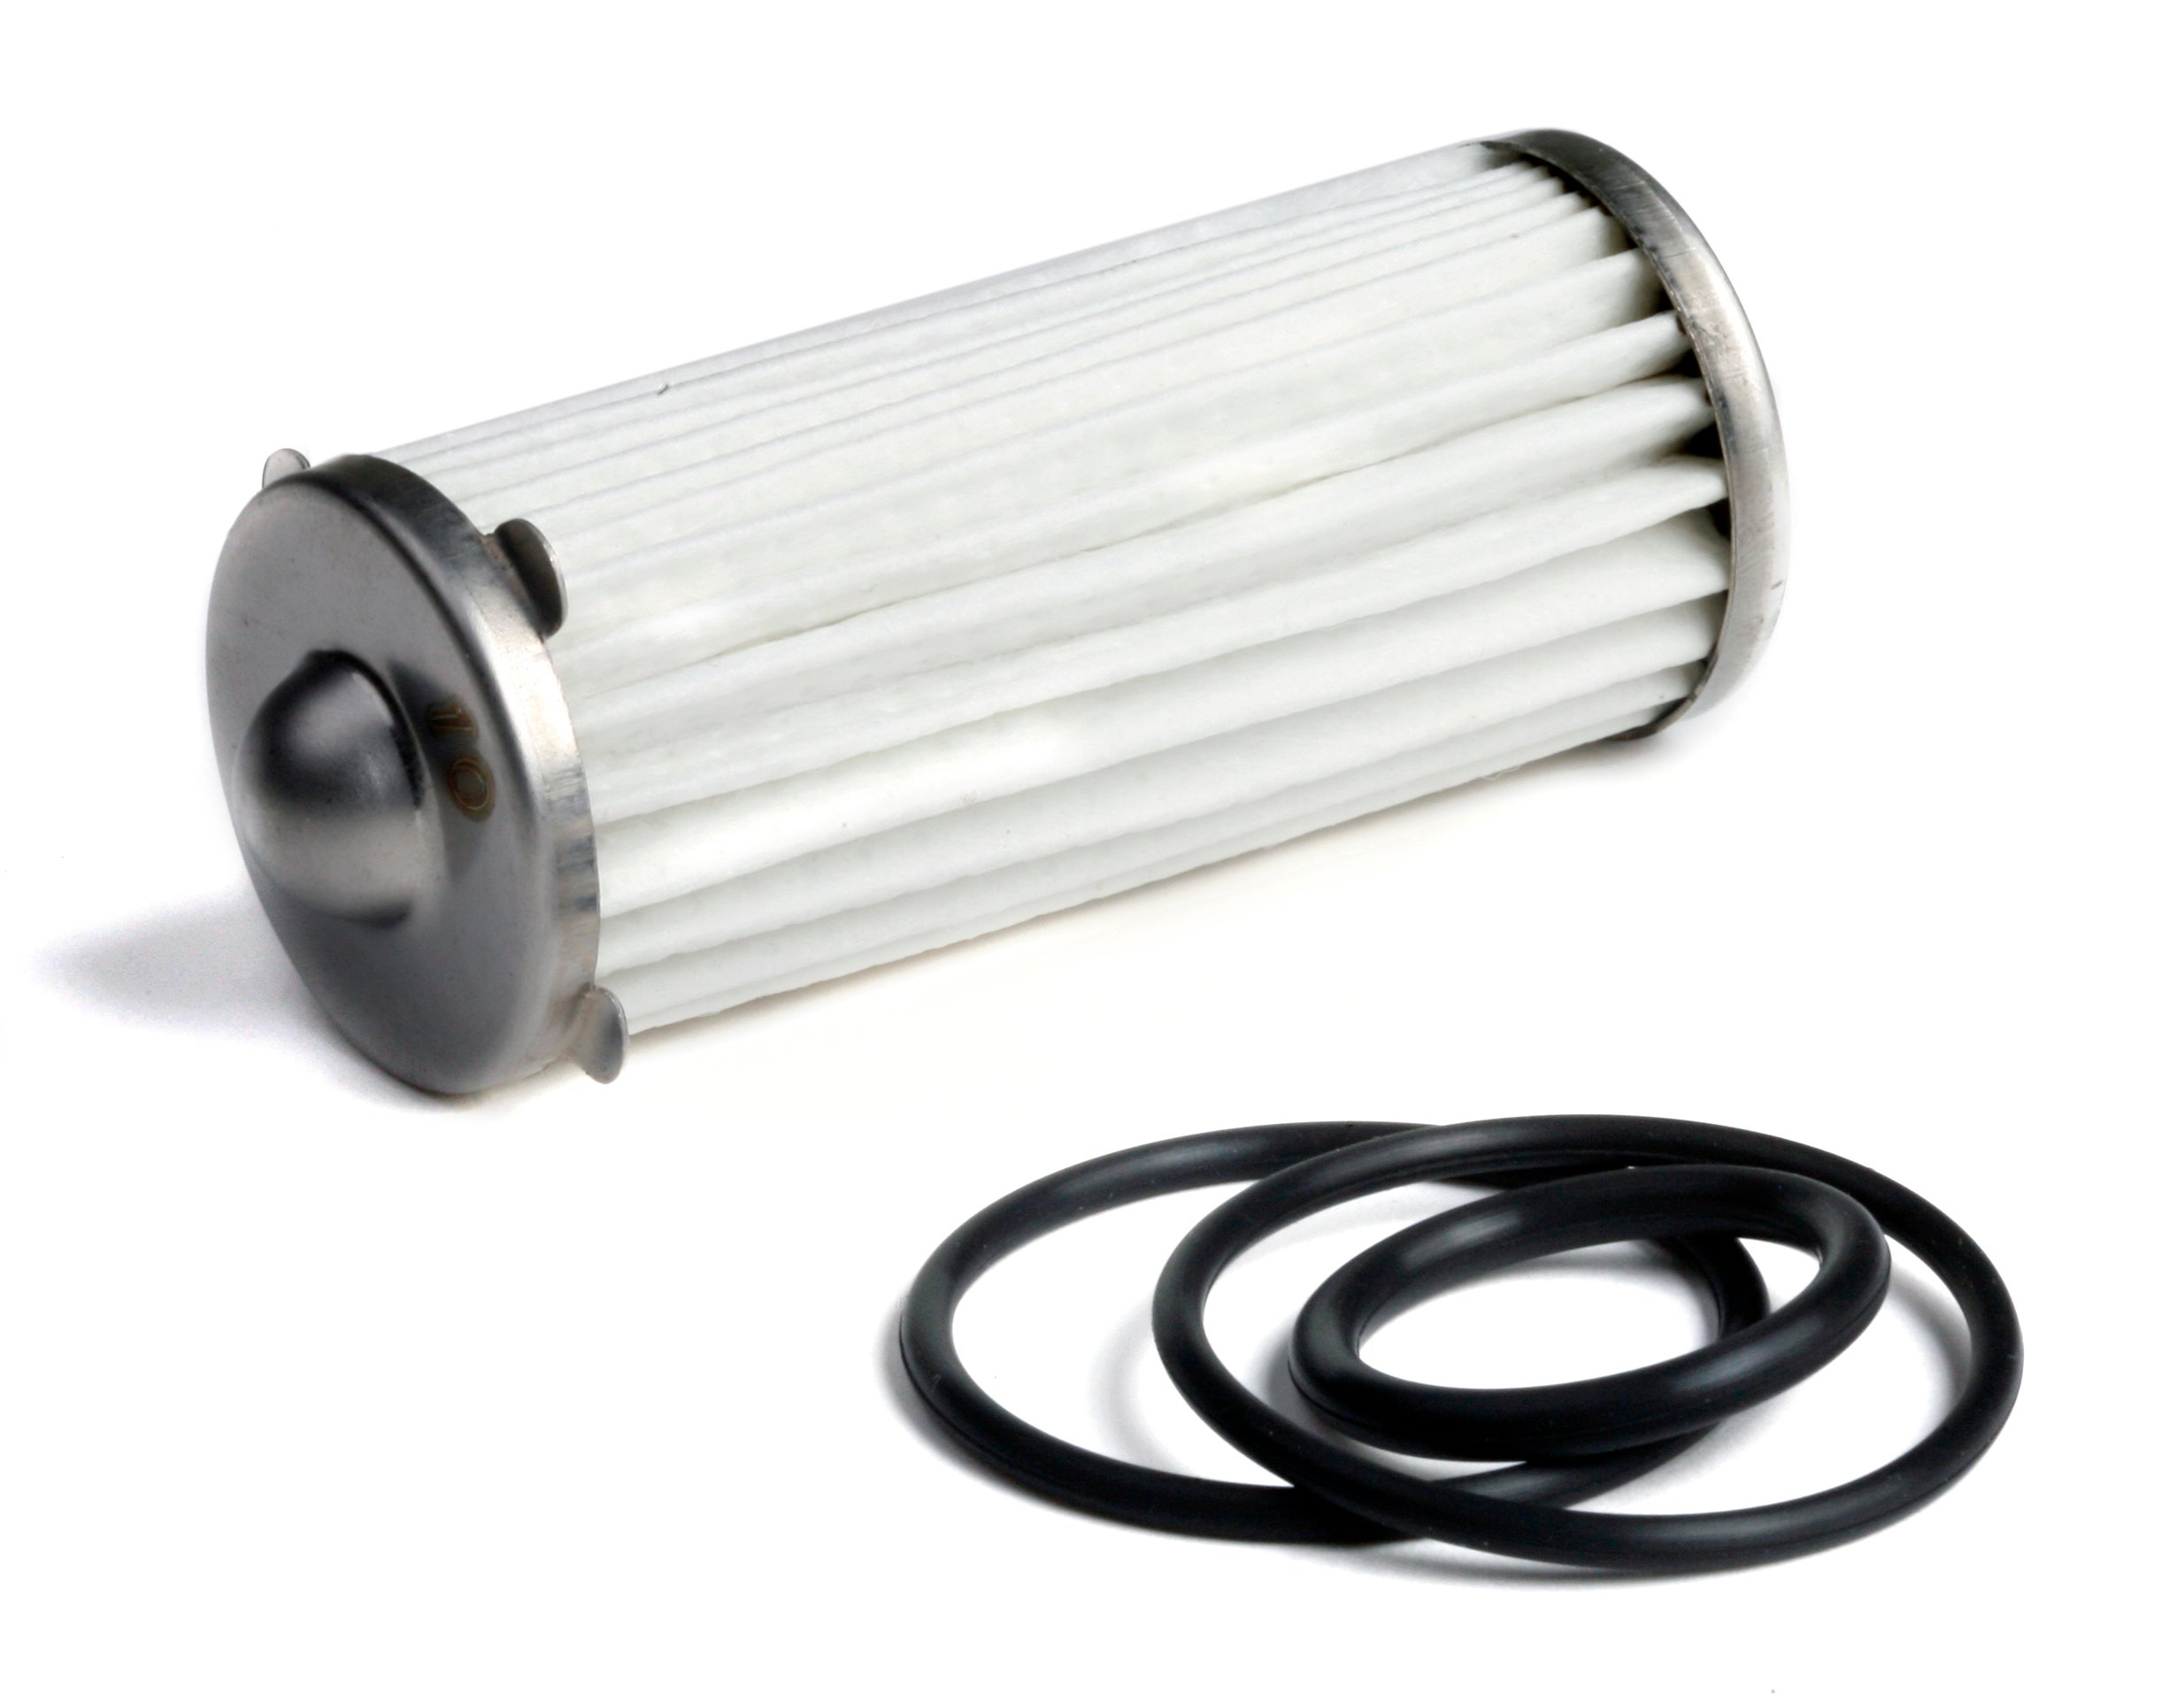 162-567 - Fuel Filter Element and O-ring Kit Image